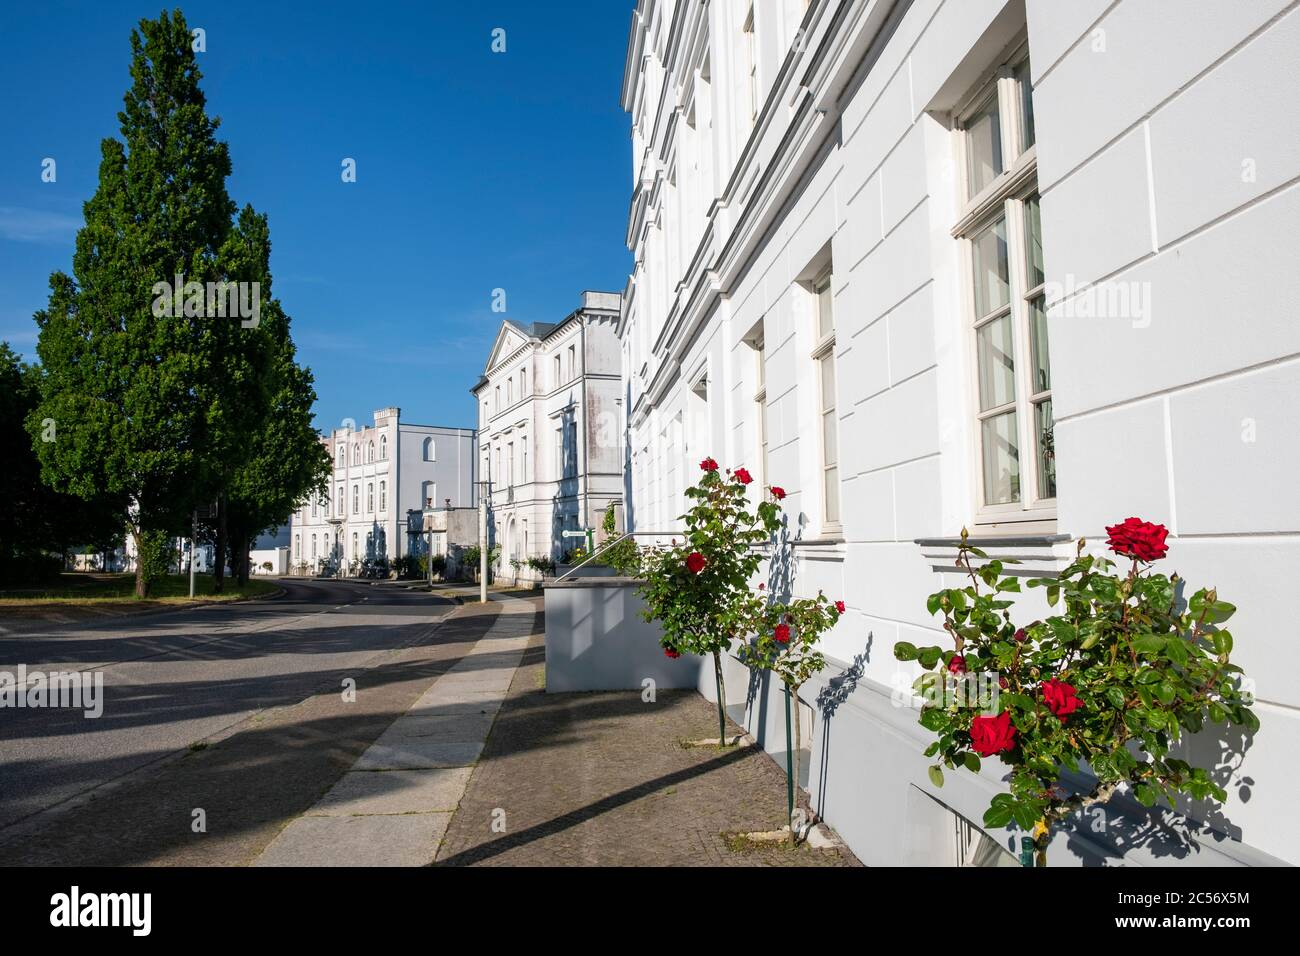 Neoclassical houses at the Circus in the city of Putbus on the german island of Rügen Stock Photo